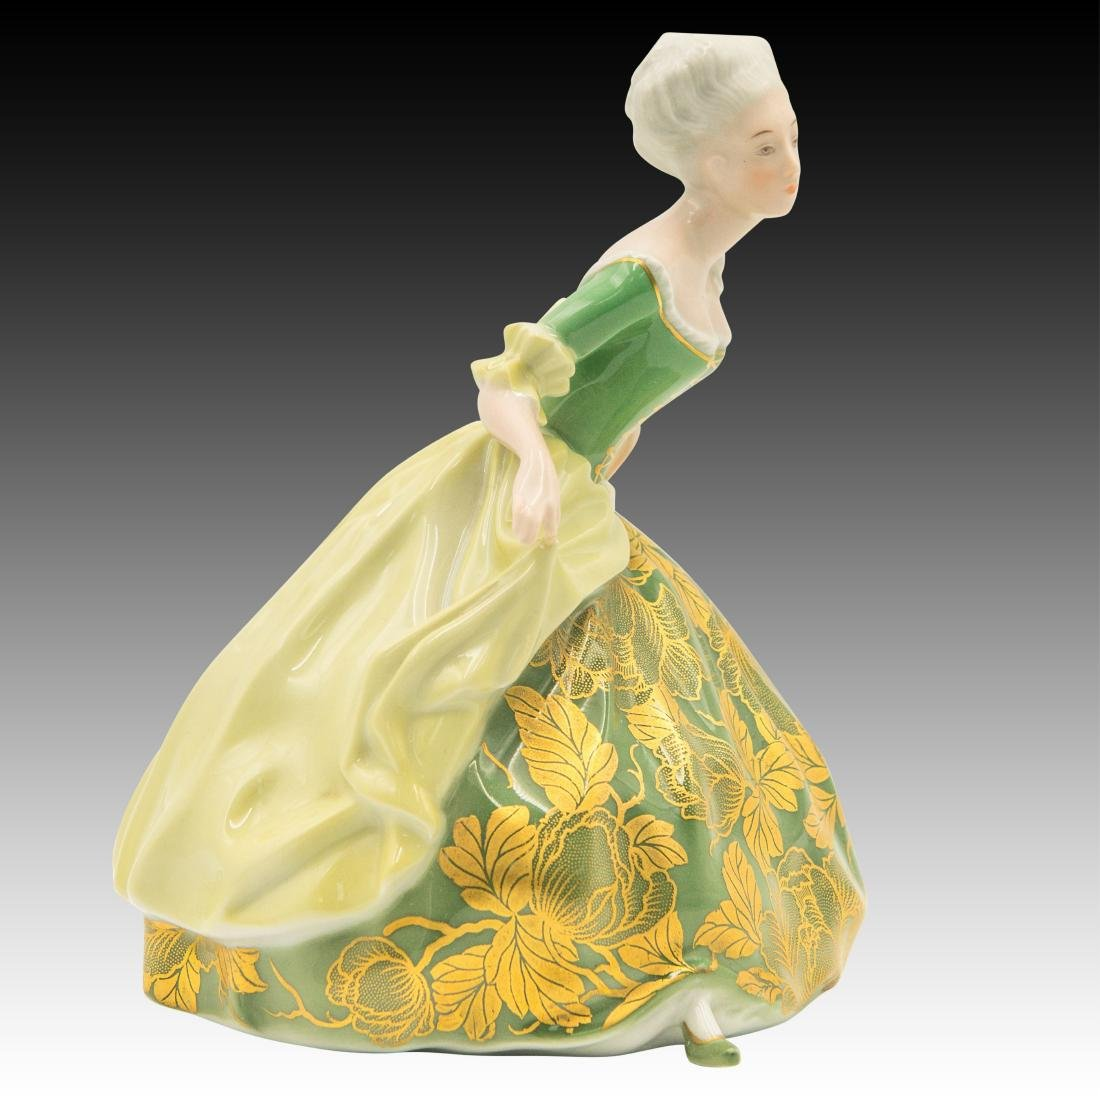 Rosenthal Rococo Dancer in Gold Green Dress - 2